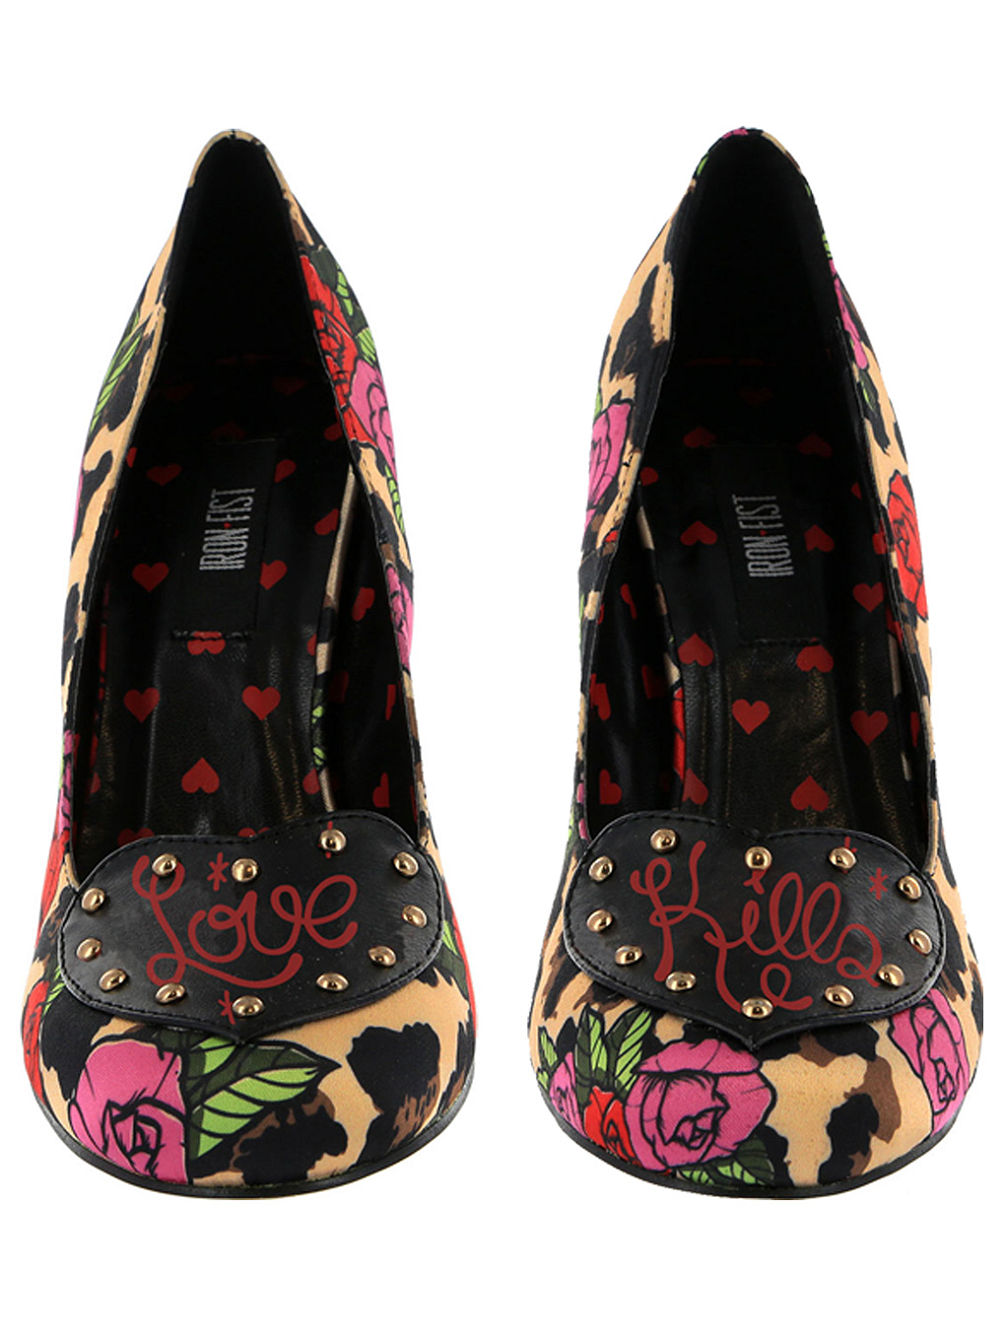 718599857b77 Buy Iron Fist Leopard Garden Heel Shoes Women online at Blue Tomato